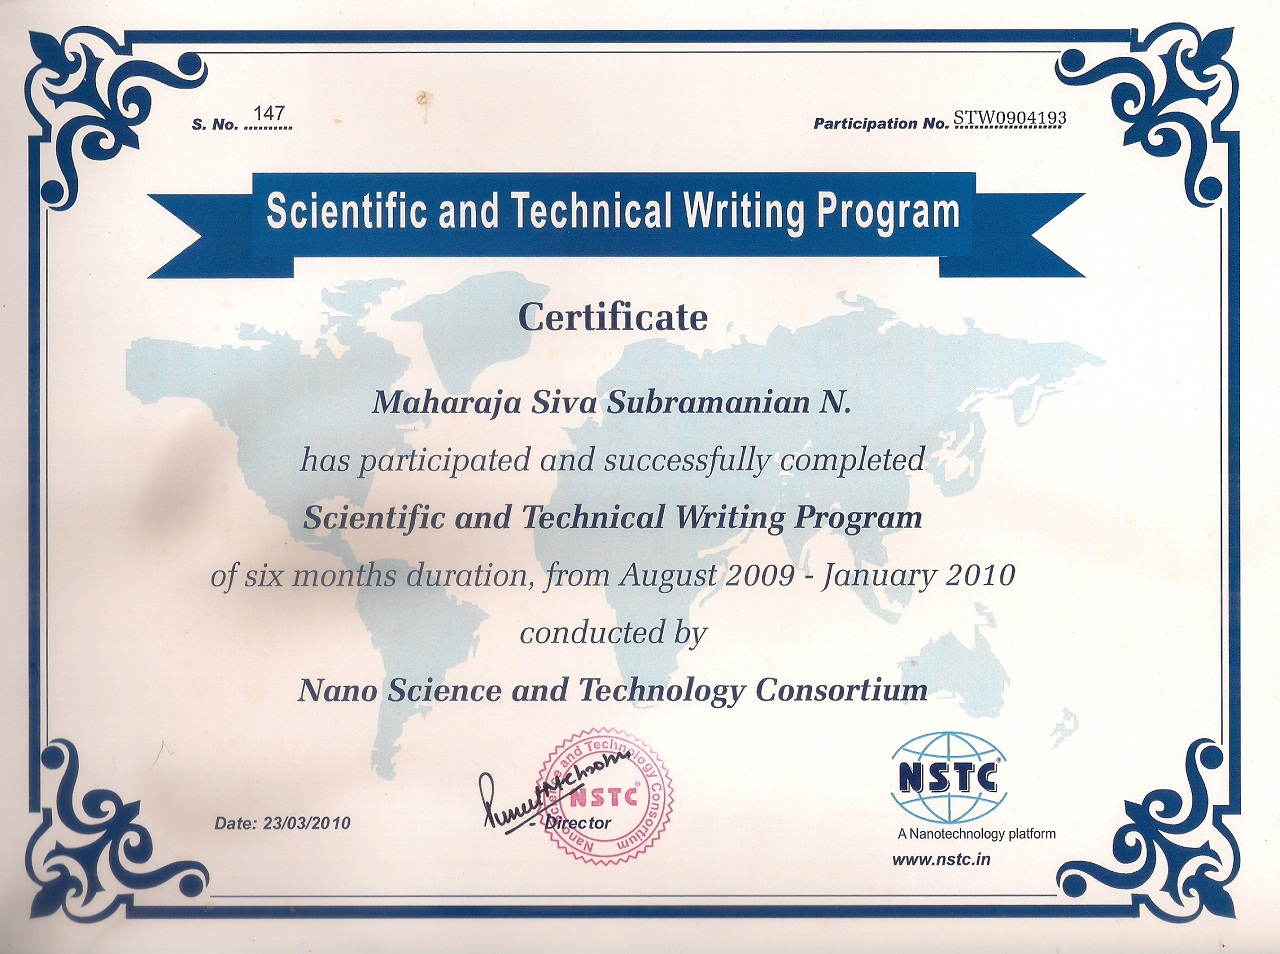 Writing Award Certificate | Teacherplanet.com